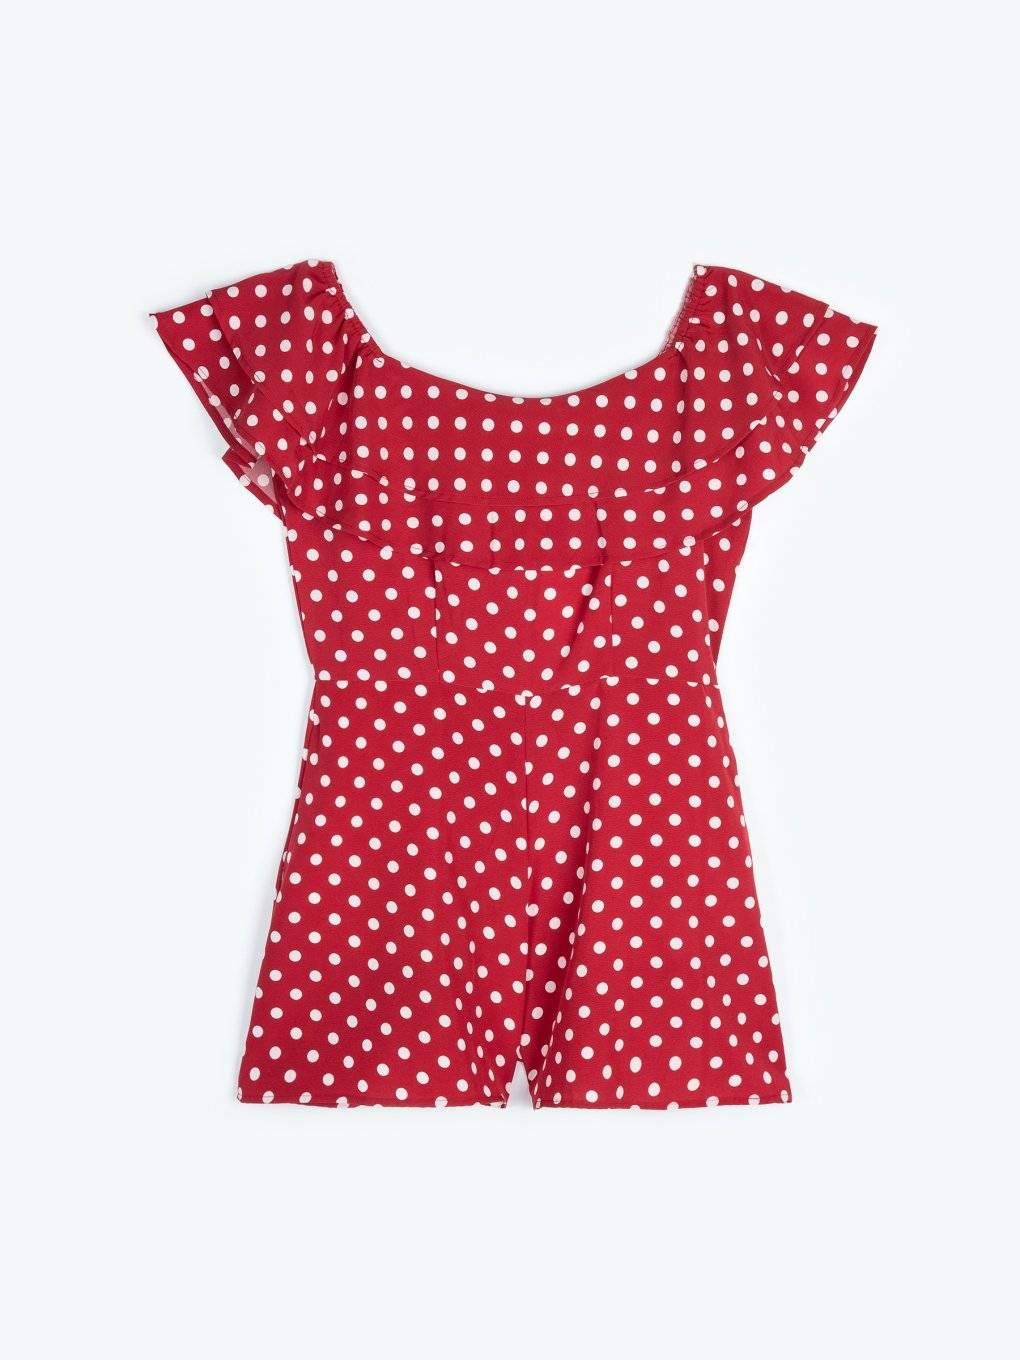 Polka dot print short jumpsuit with ruffles